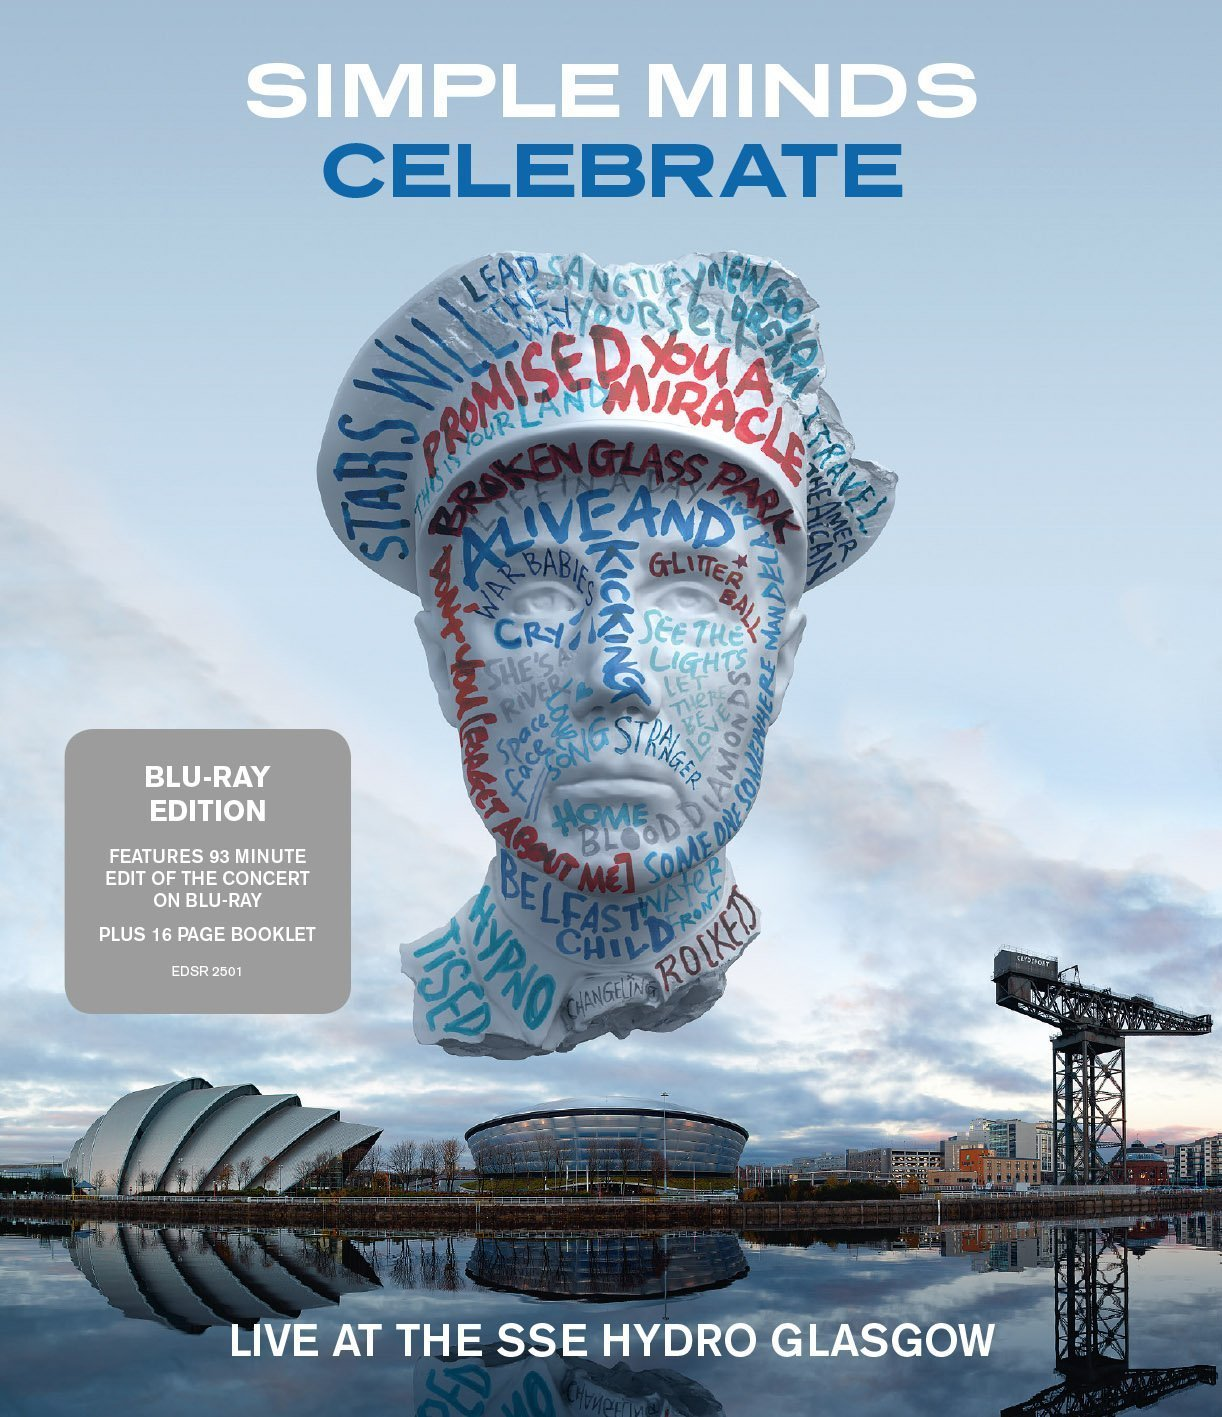 Celebrate-Live At The Sse Hydro Glasgow (Blu-Ray: Amazon.de: Simple ...